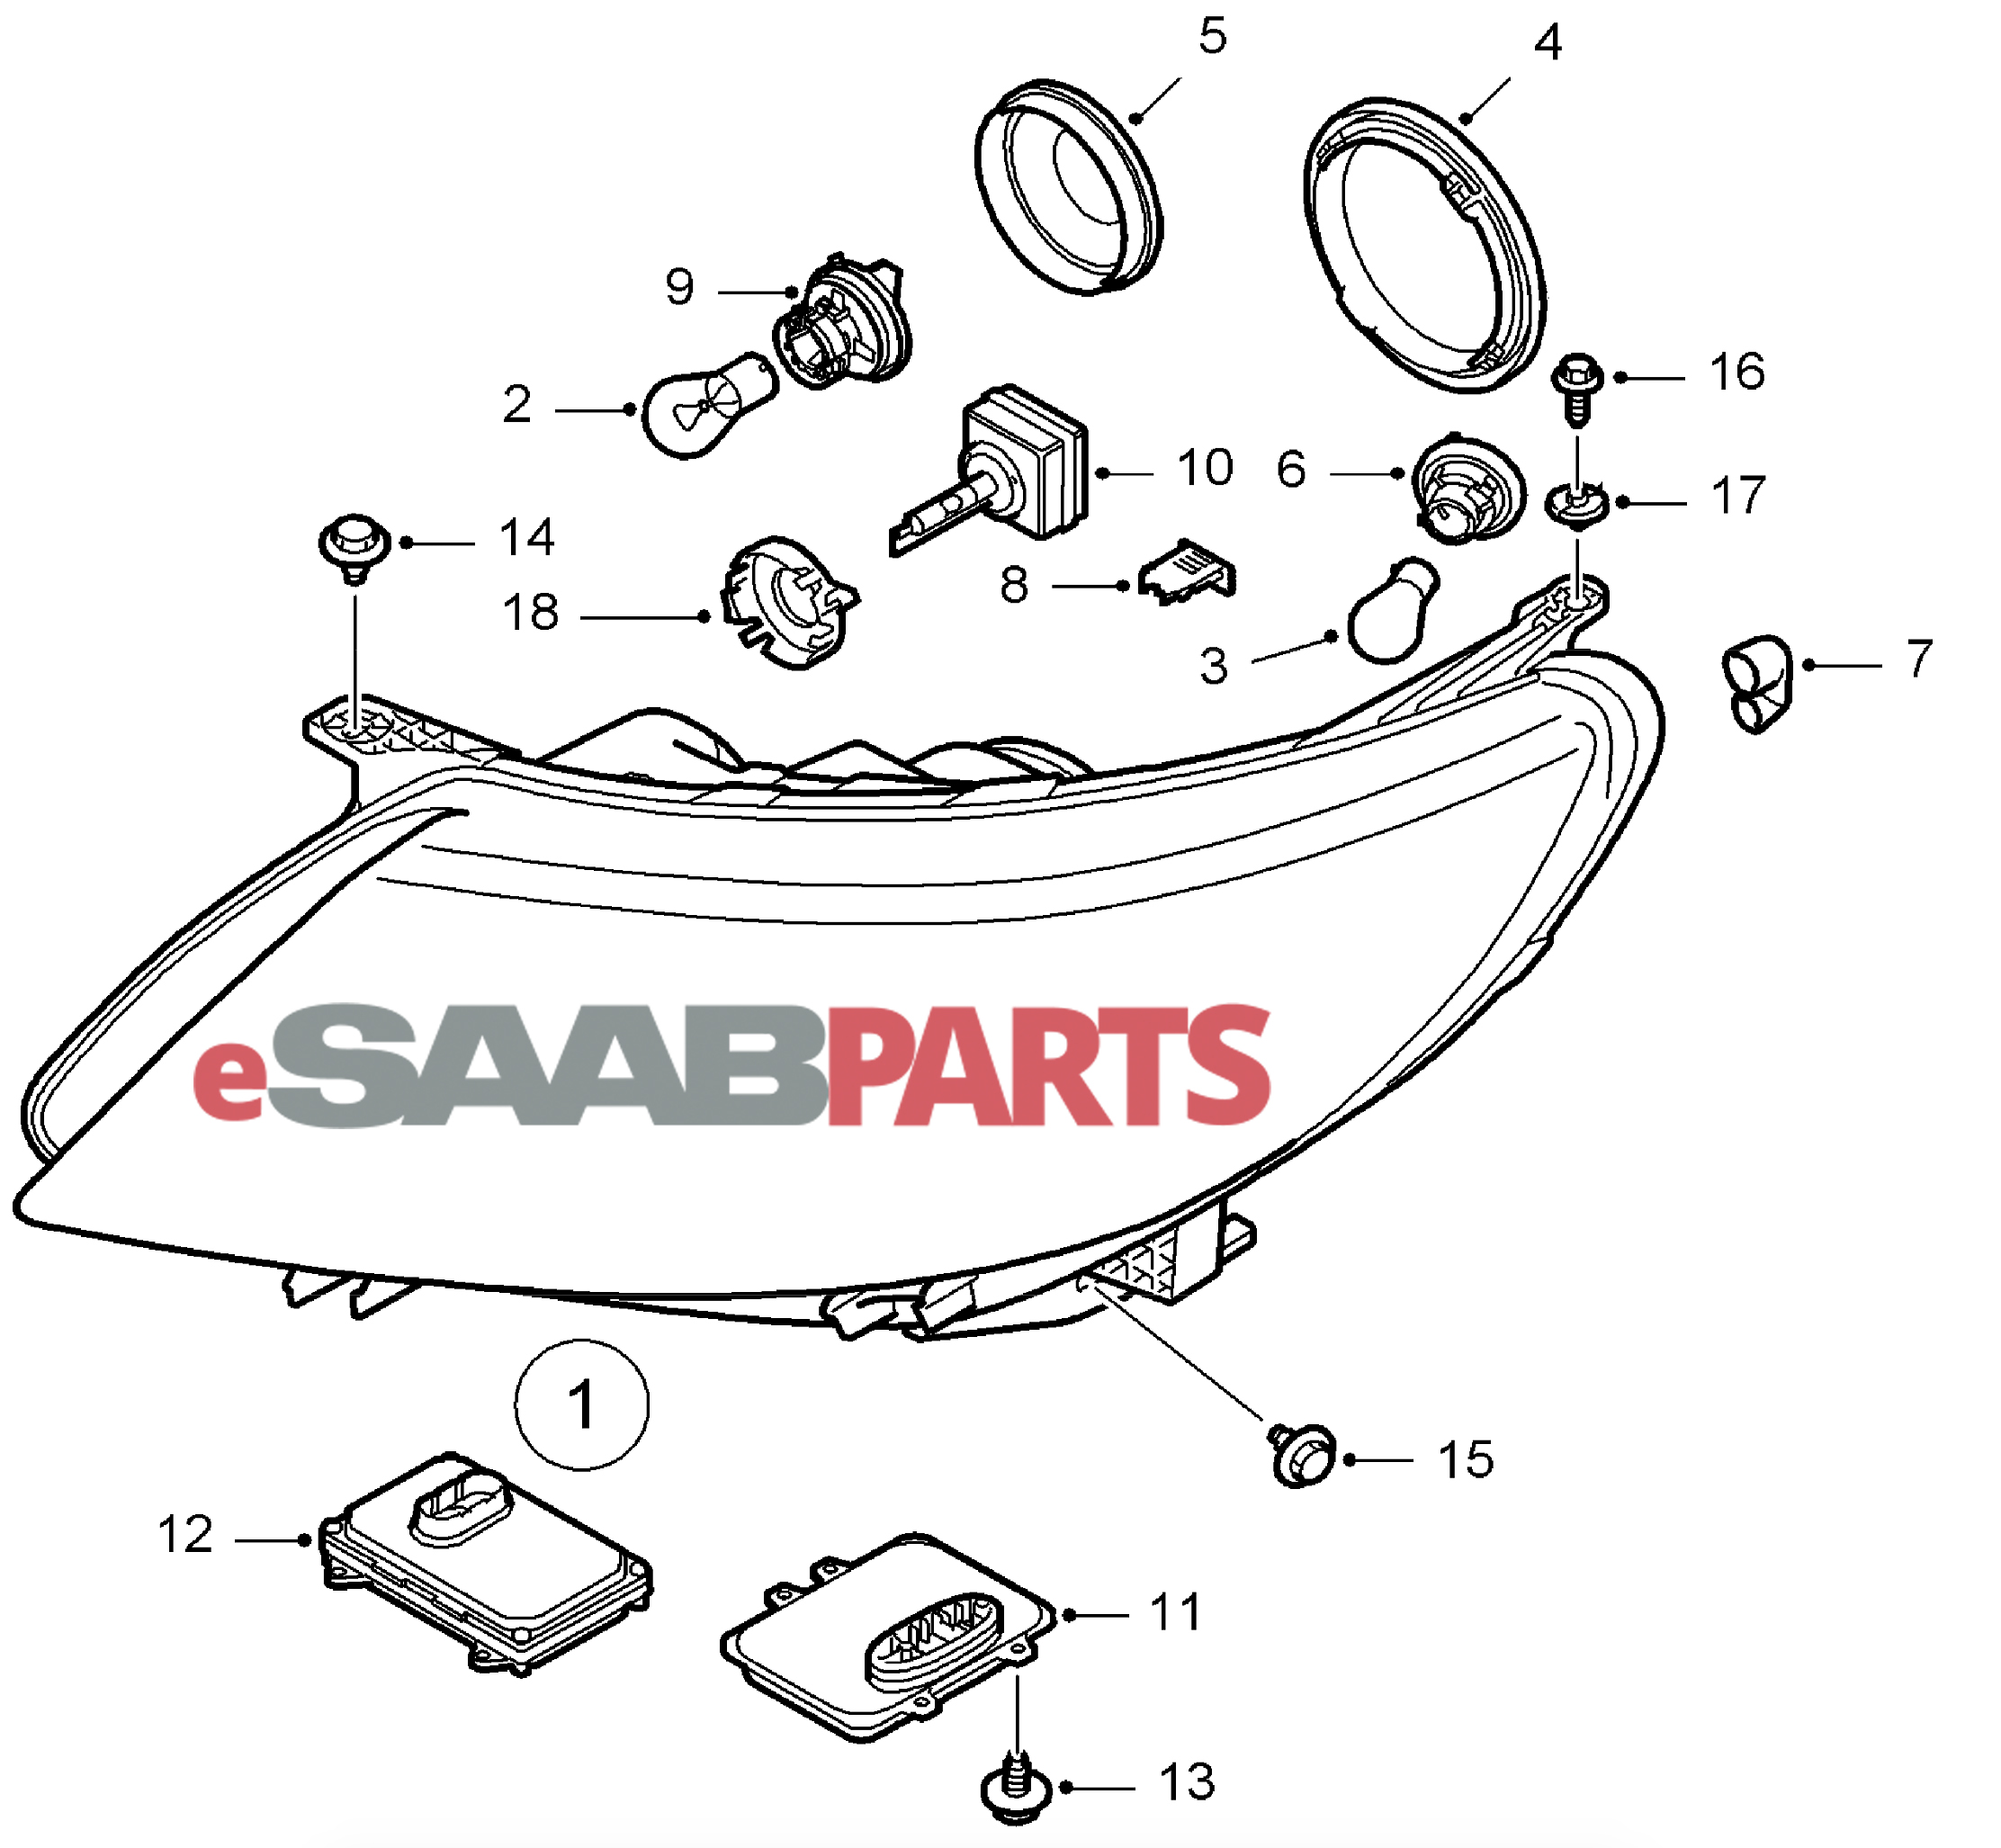 Saab 1999 9 5 Turbo Electrical System Diagram